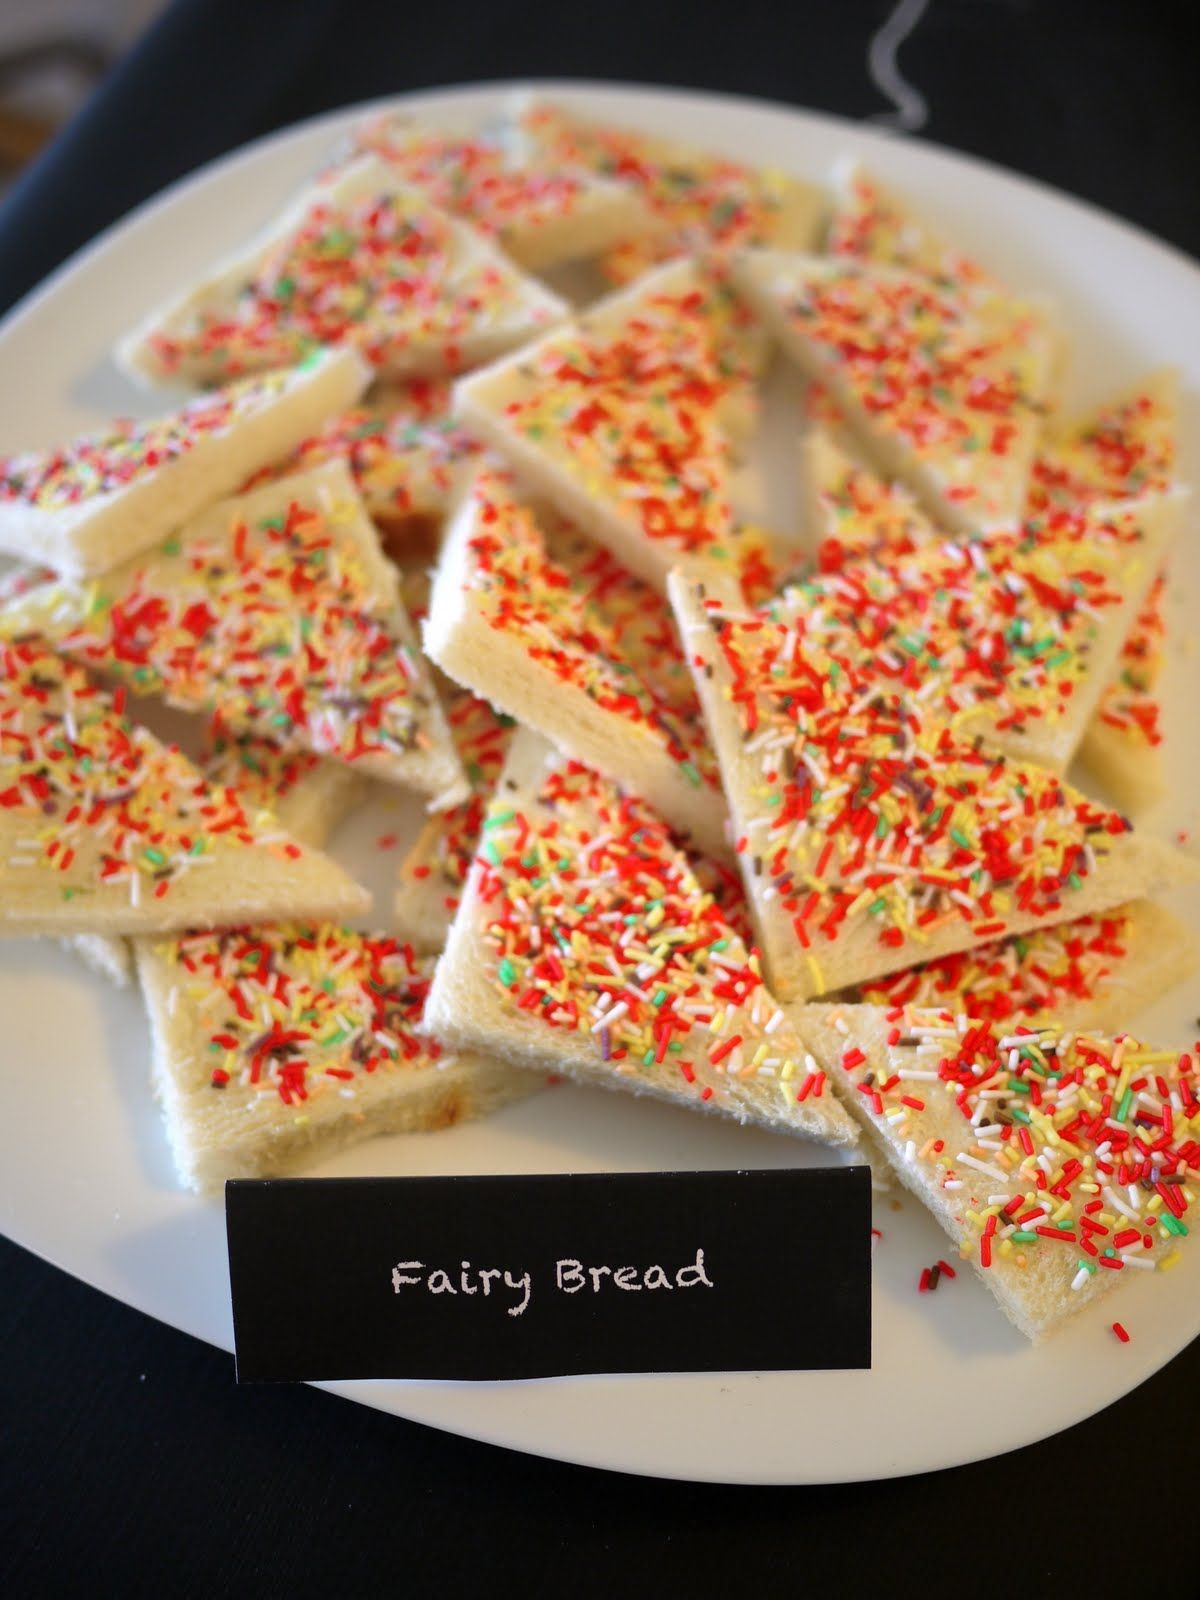 The Kiwi Birthday Party New Zealand Food Food Fairy Bread